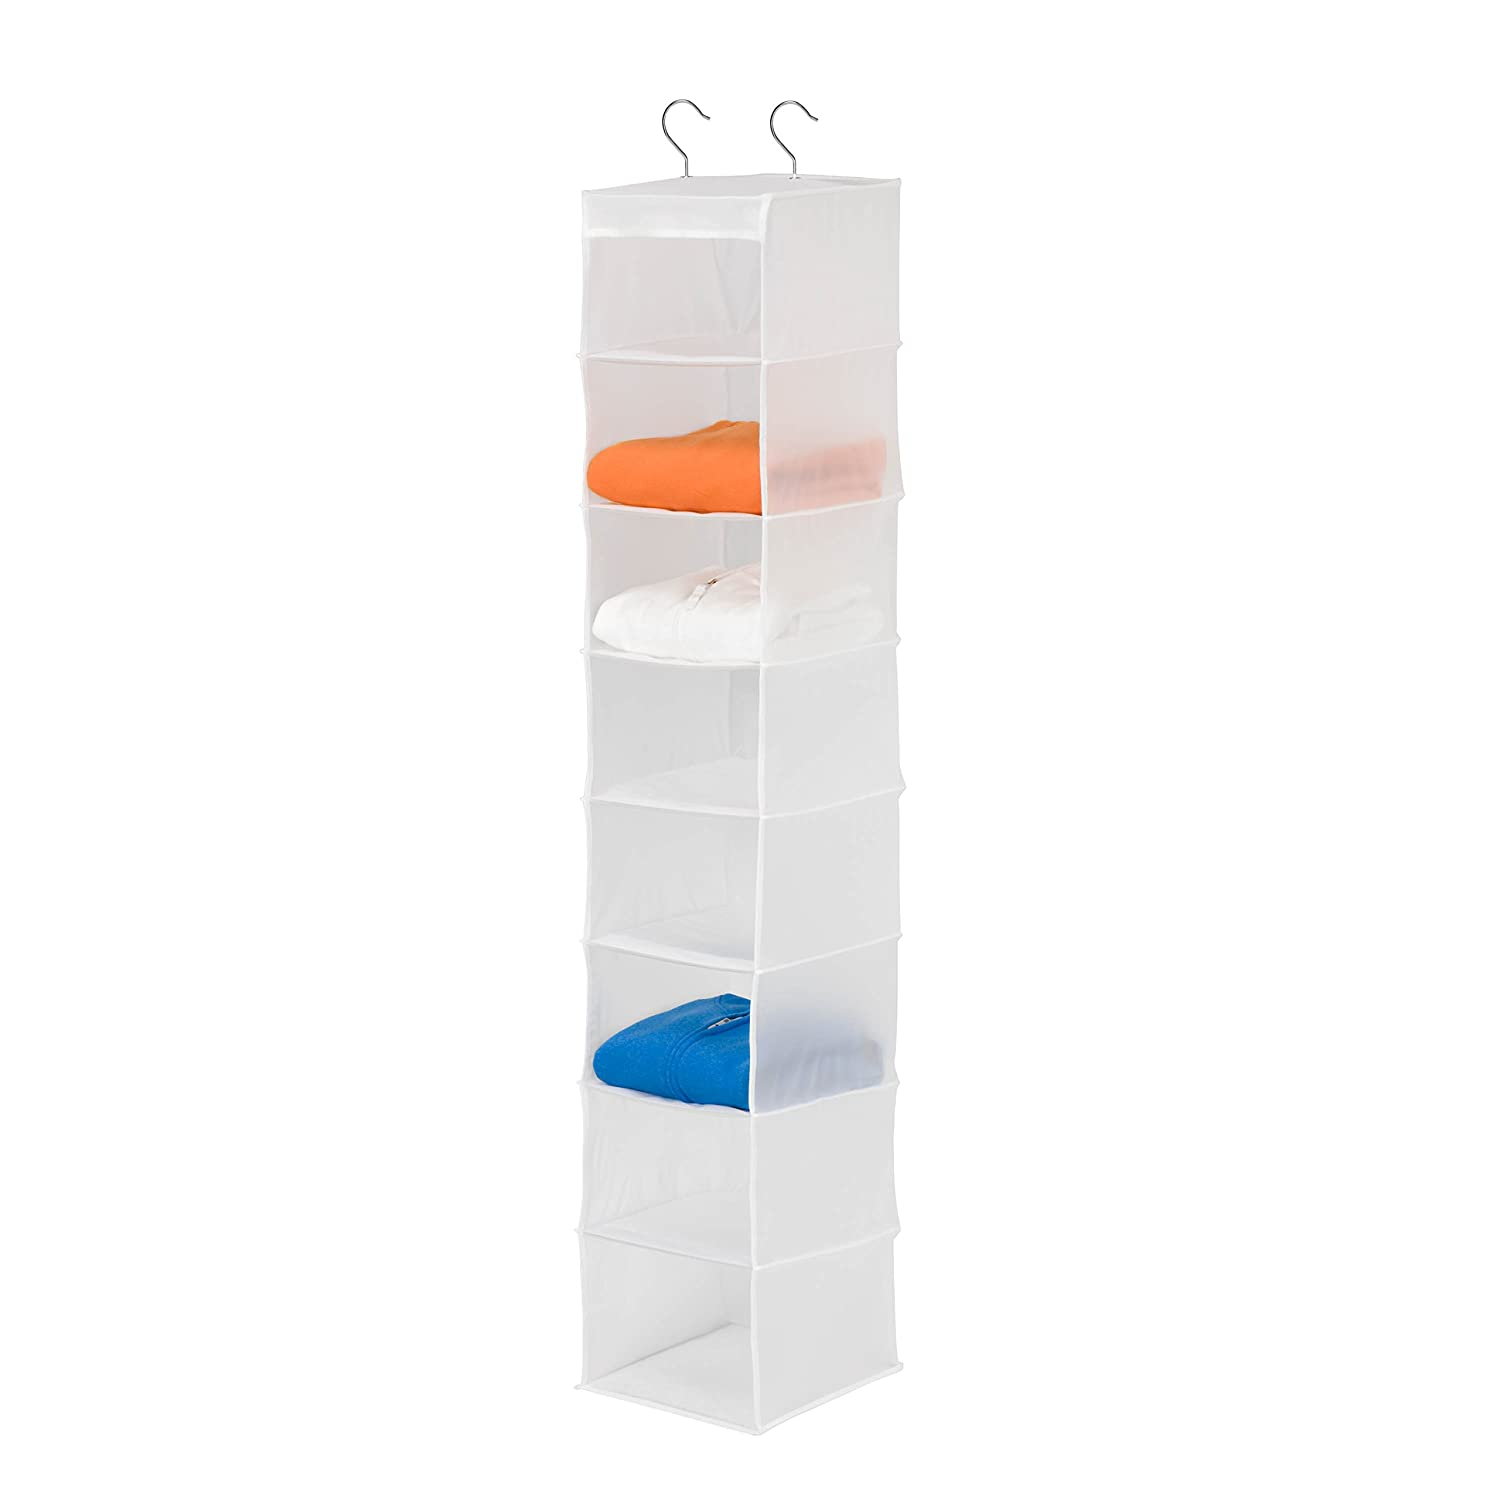 Honey-Can-Do SFT-01426 8-Shelf PEVA Hanging Organizer, white Honey-Can-Do International